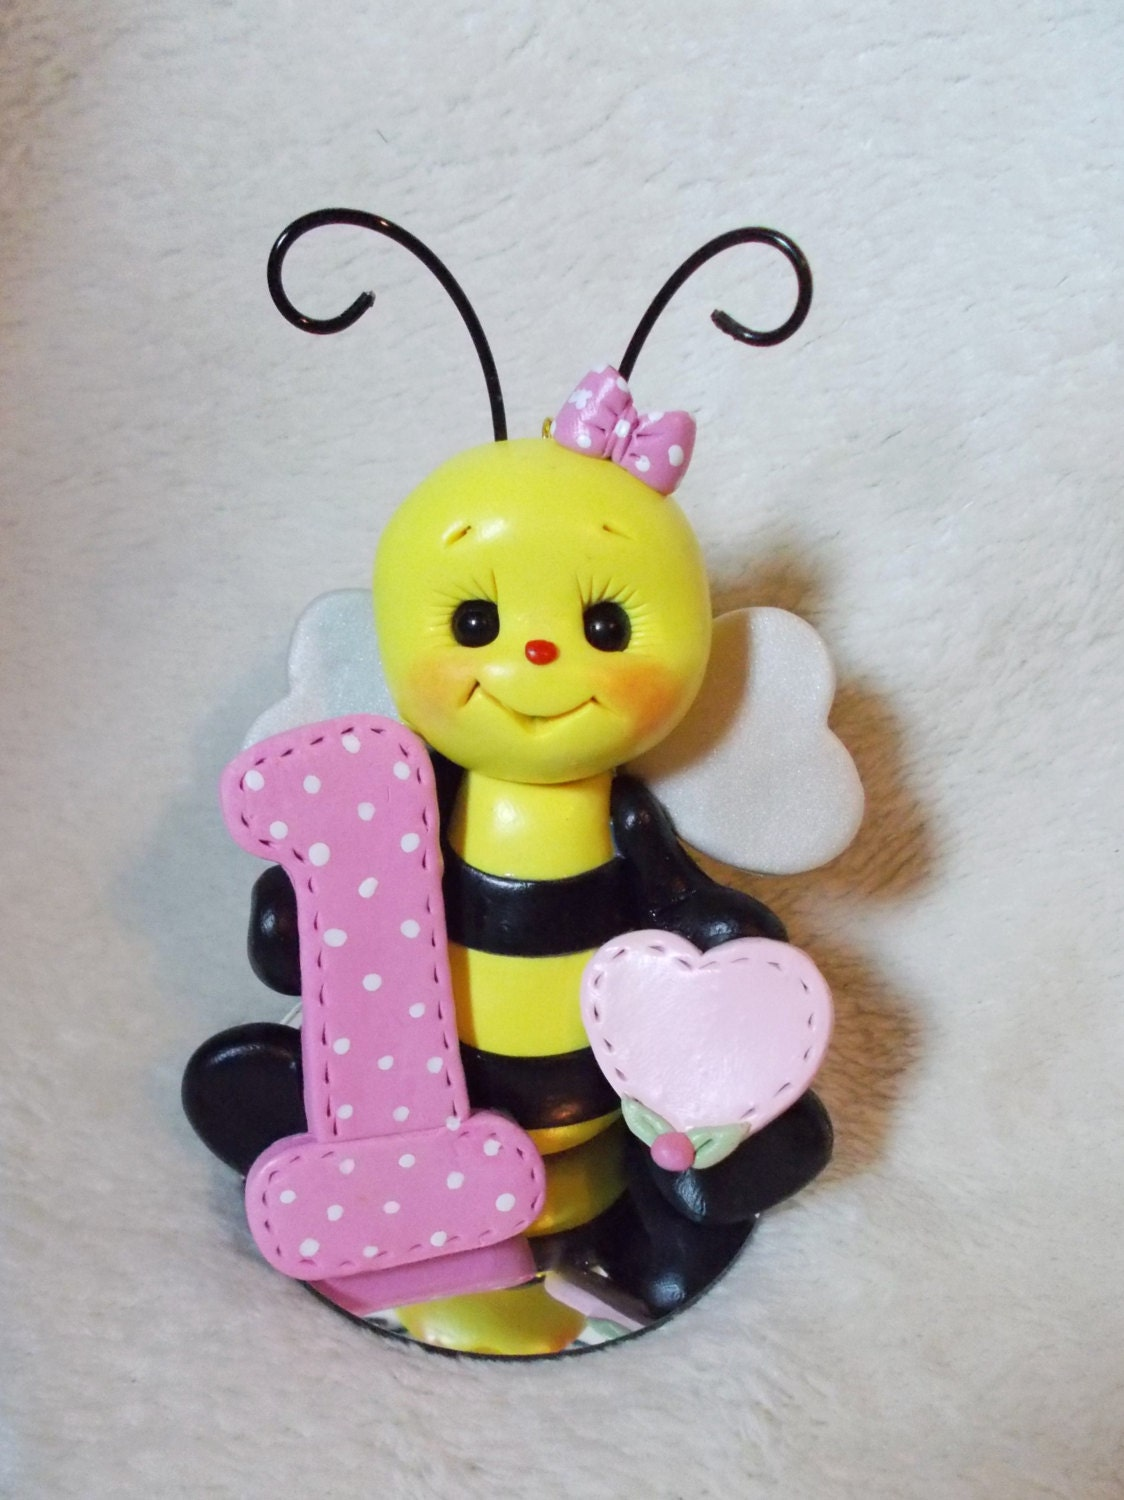 bumble bee birthday cake topper Christmas ornament by clayqts